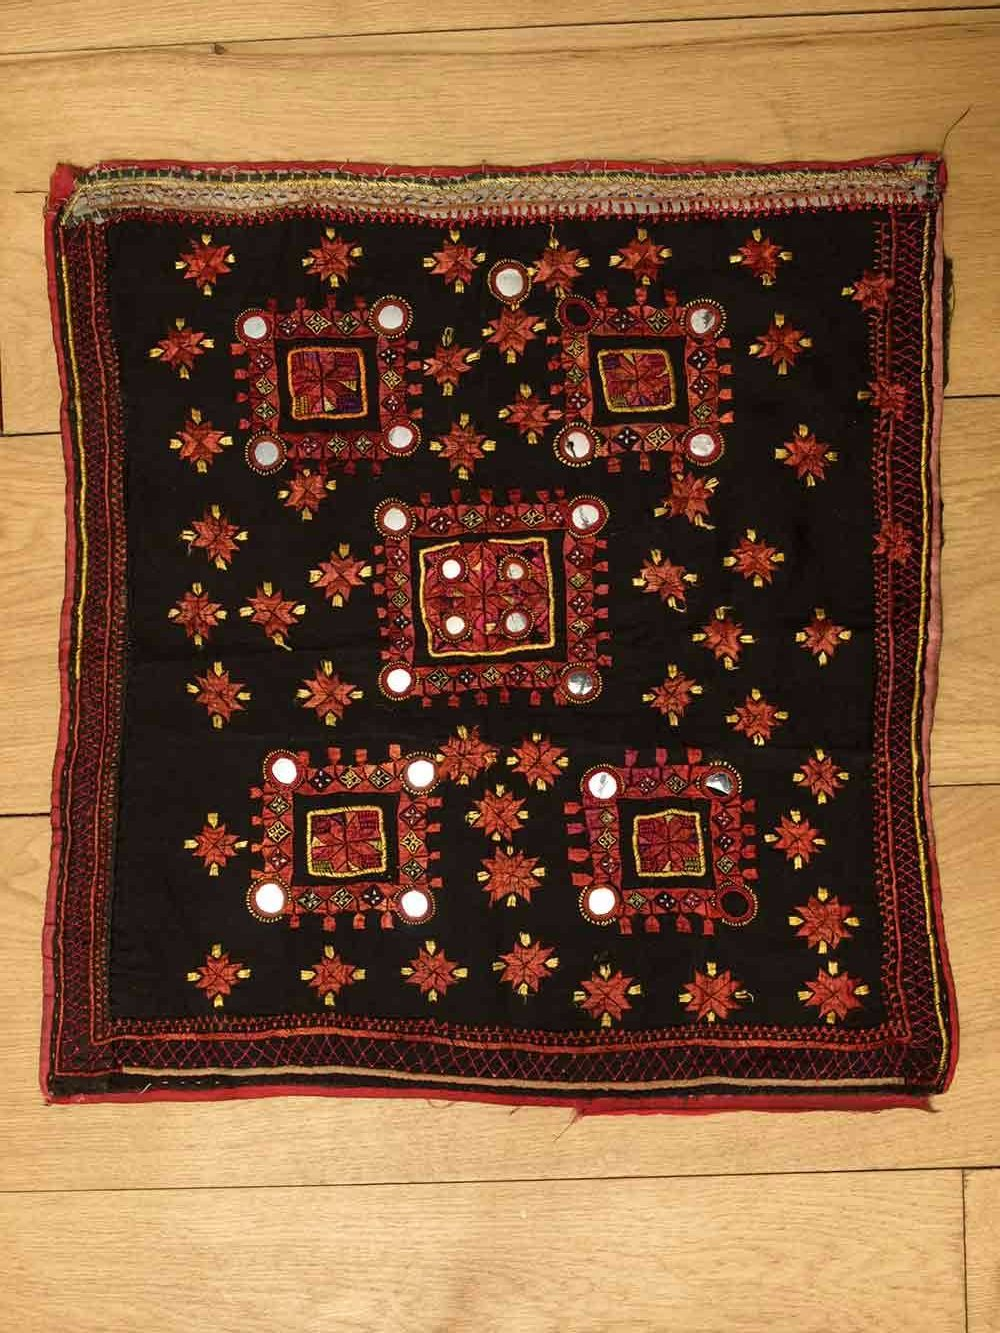 Embroidered Black & Red Square Cloth